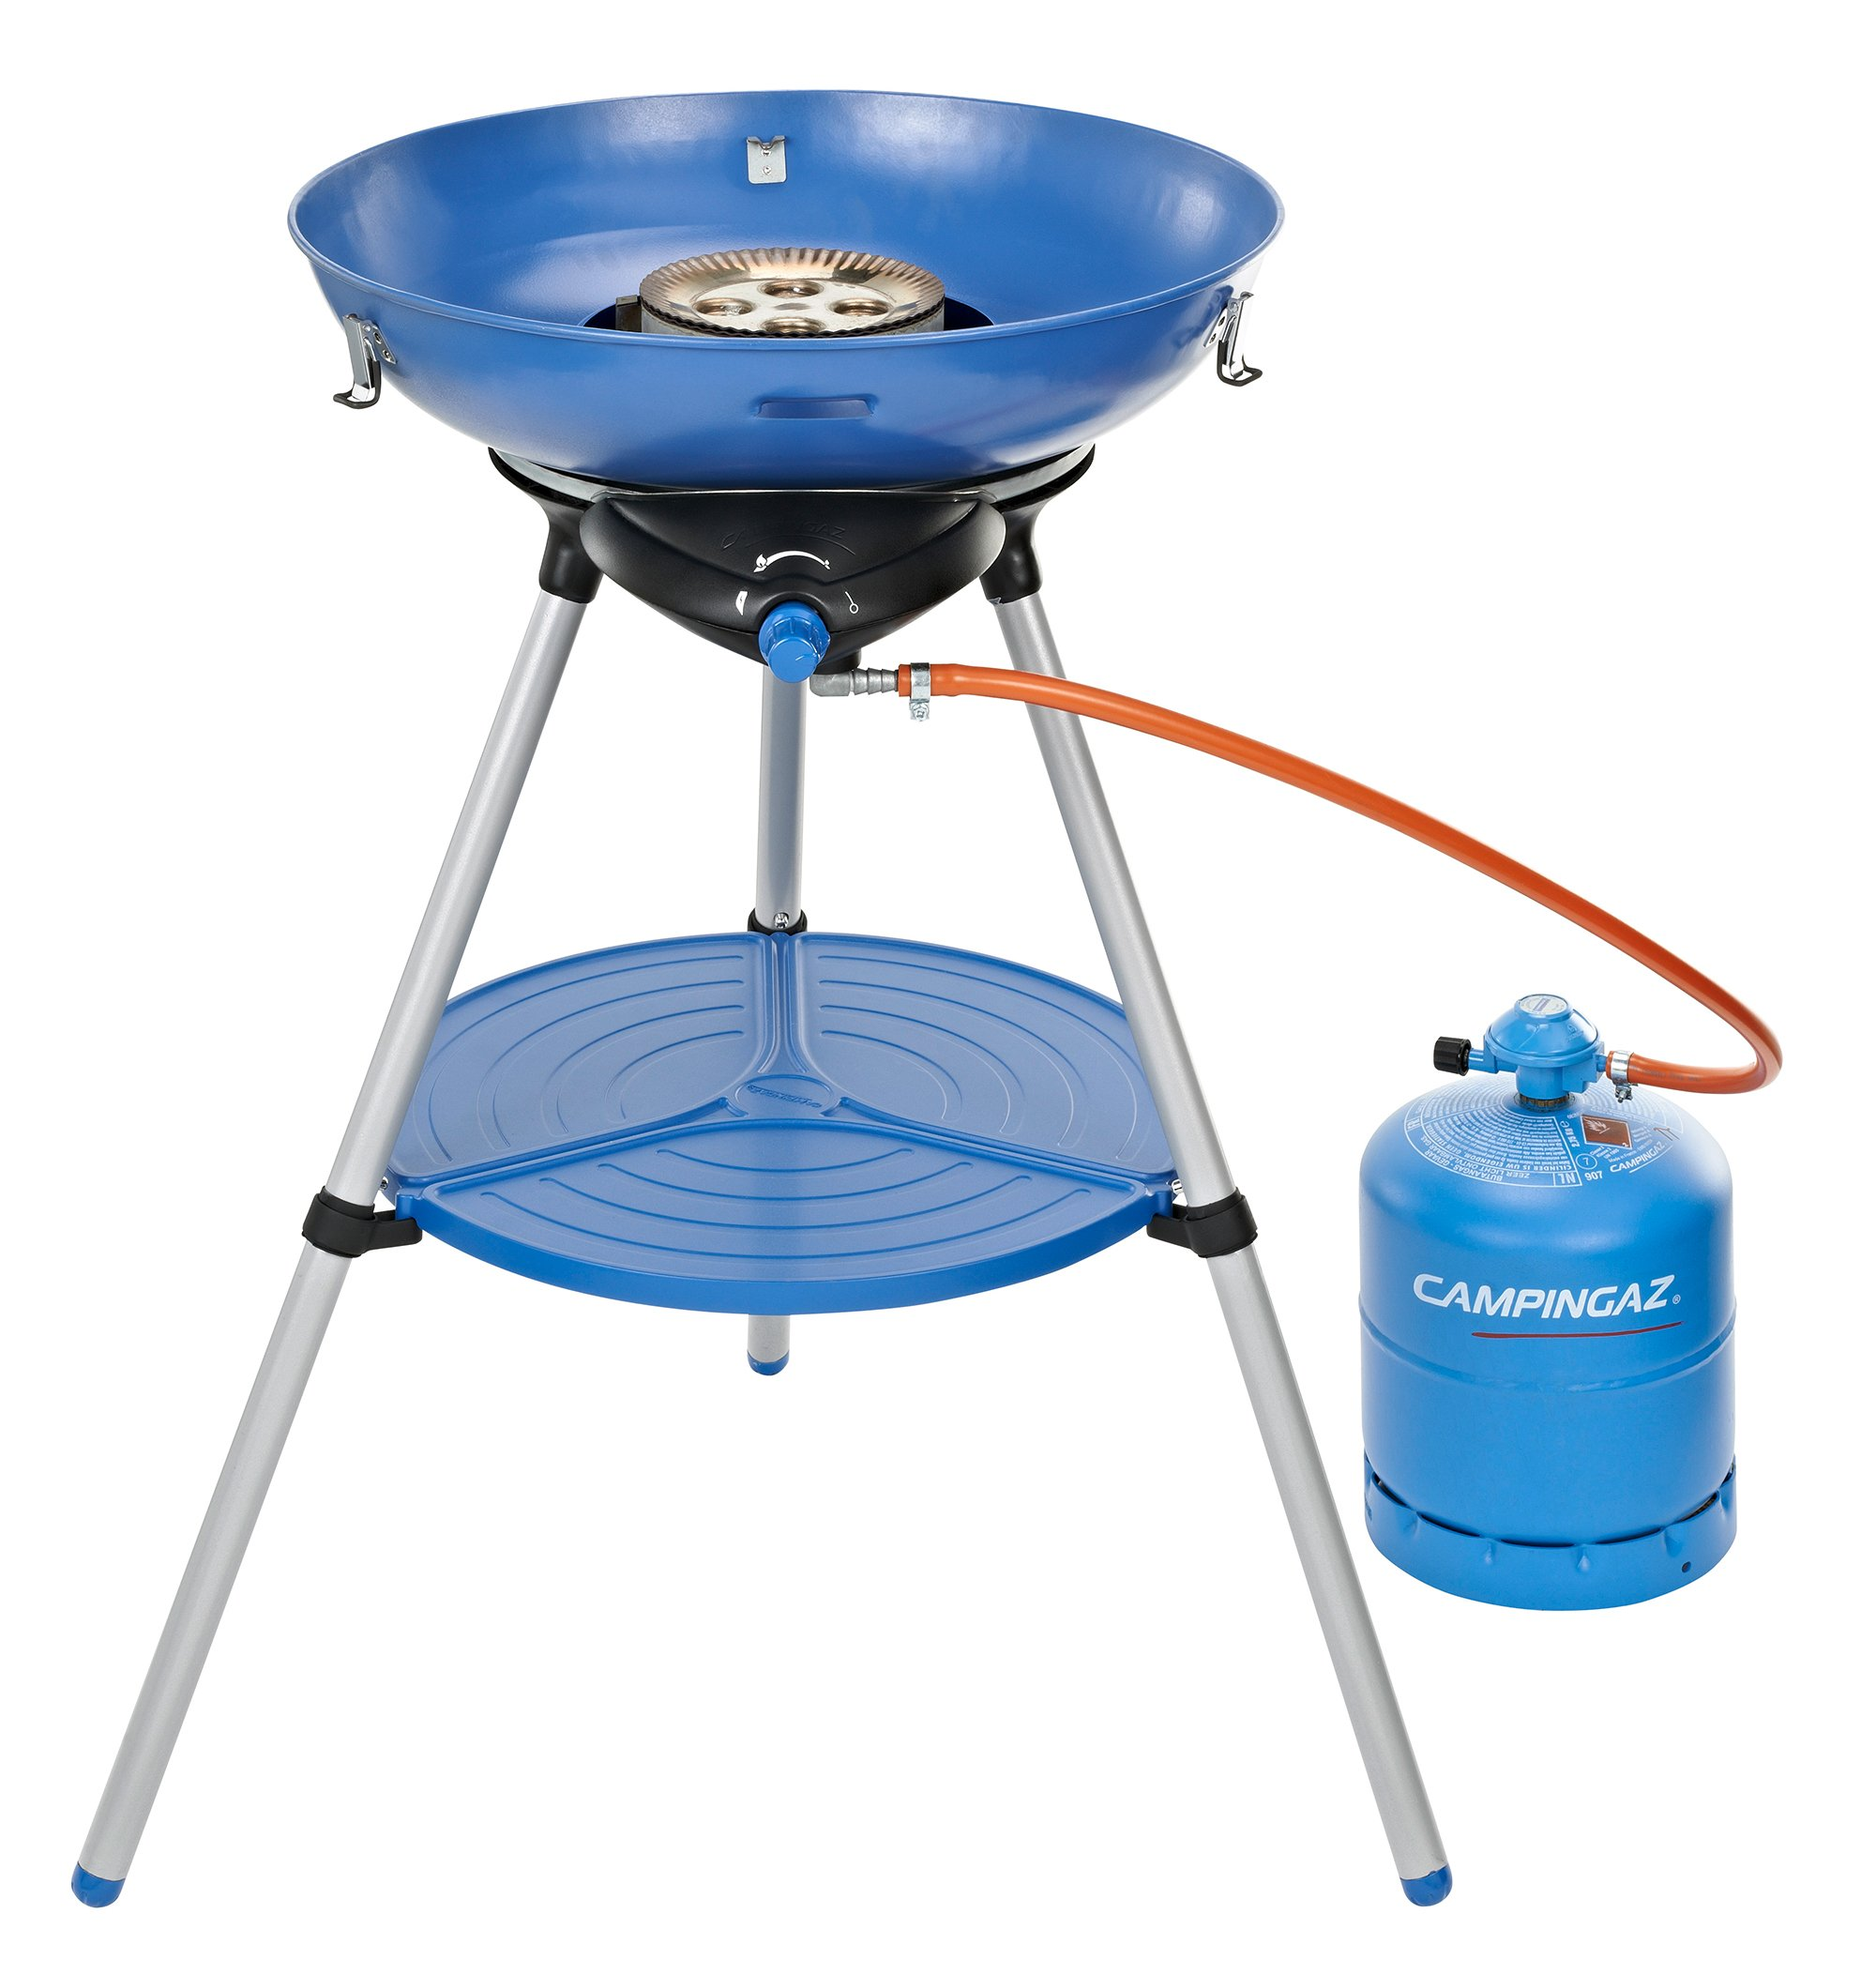 Campingaz, All in One portable Camping BBQ 3